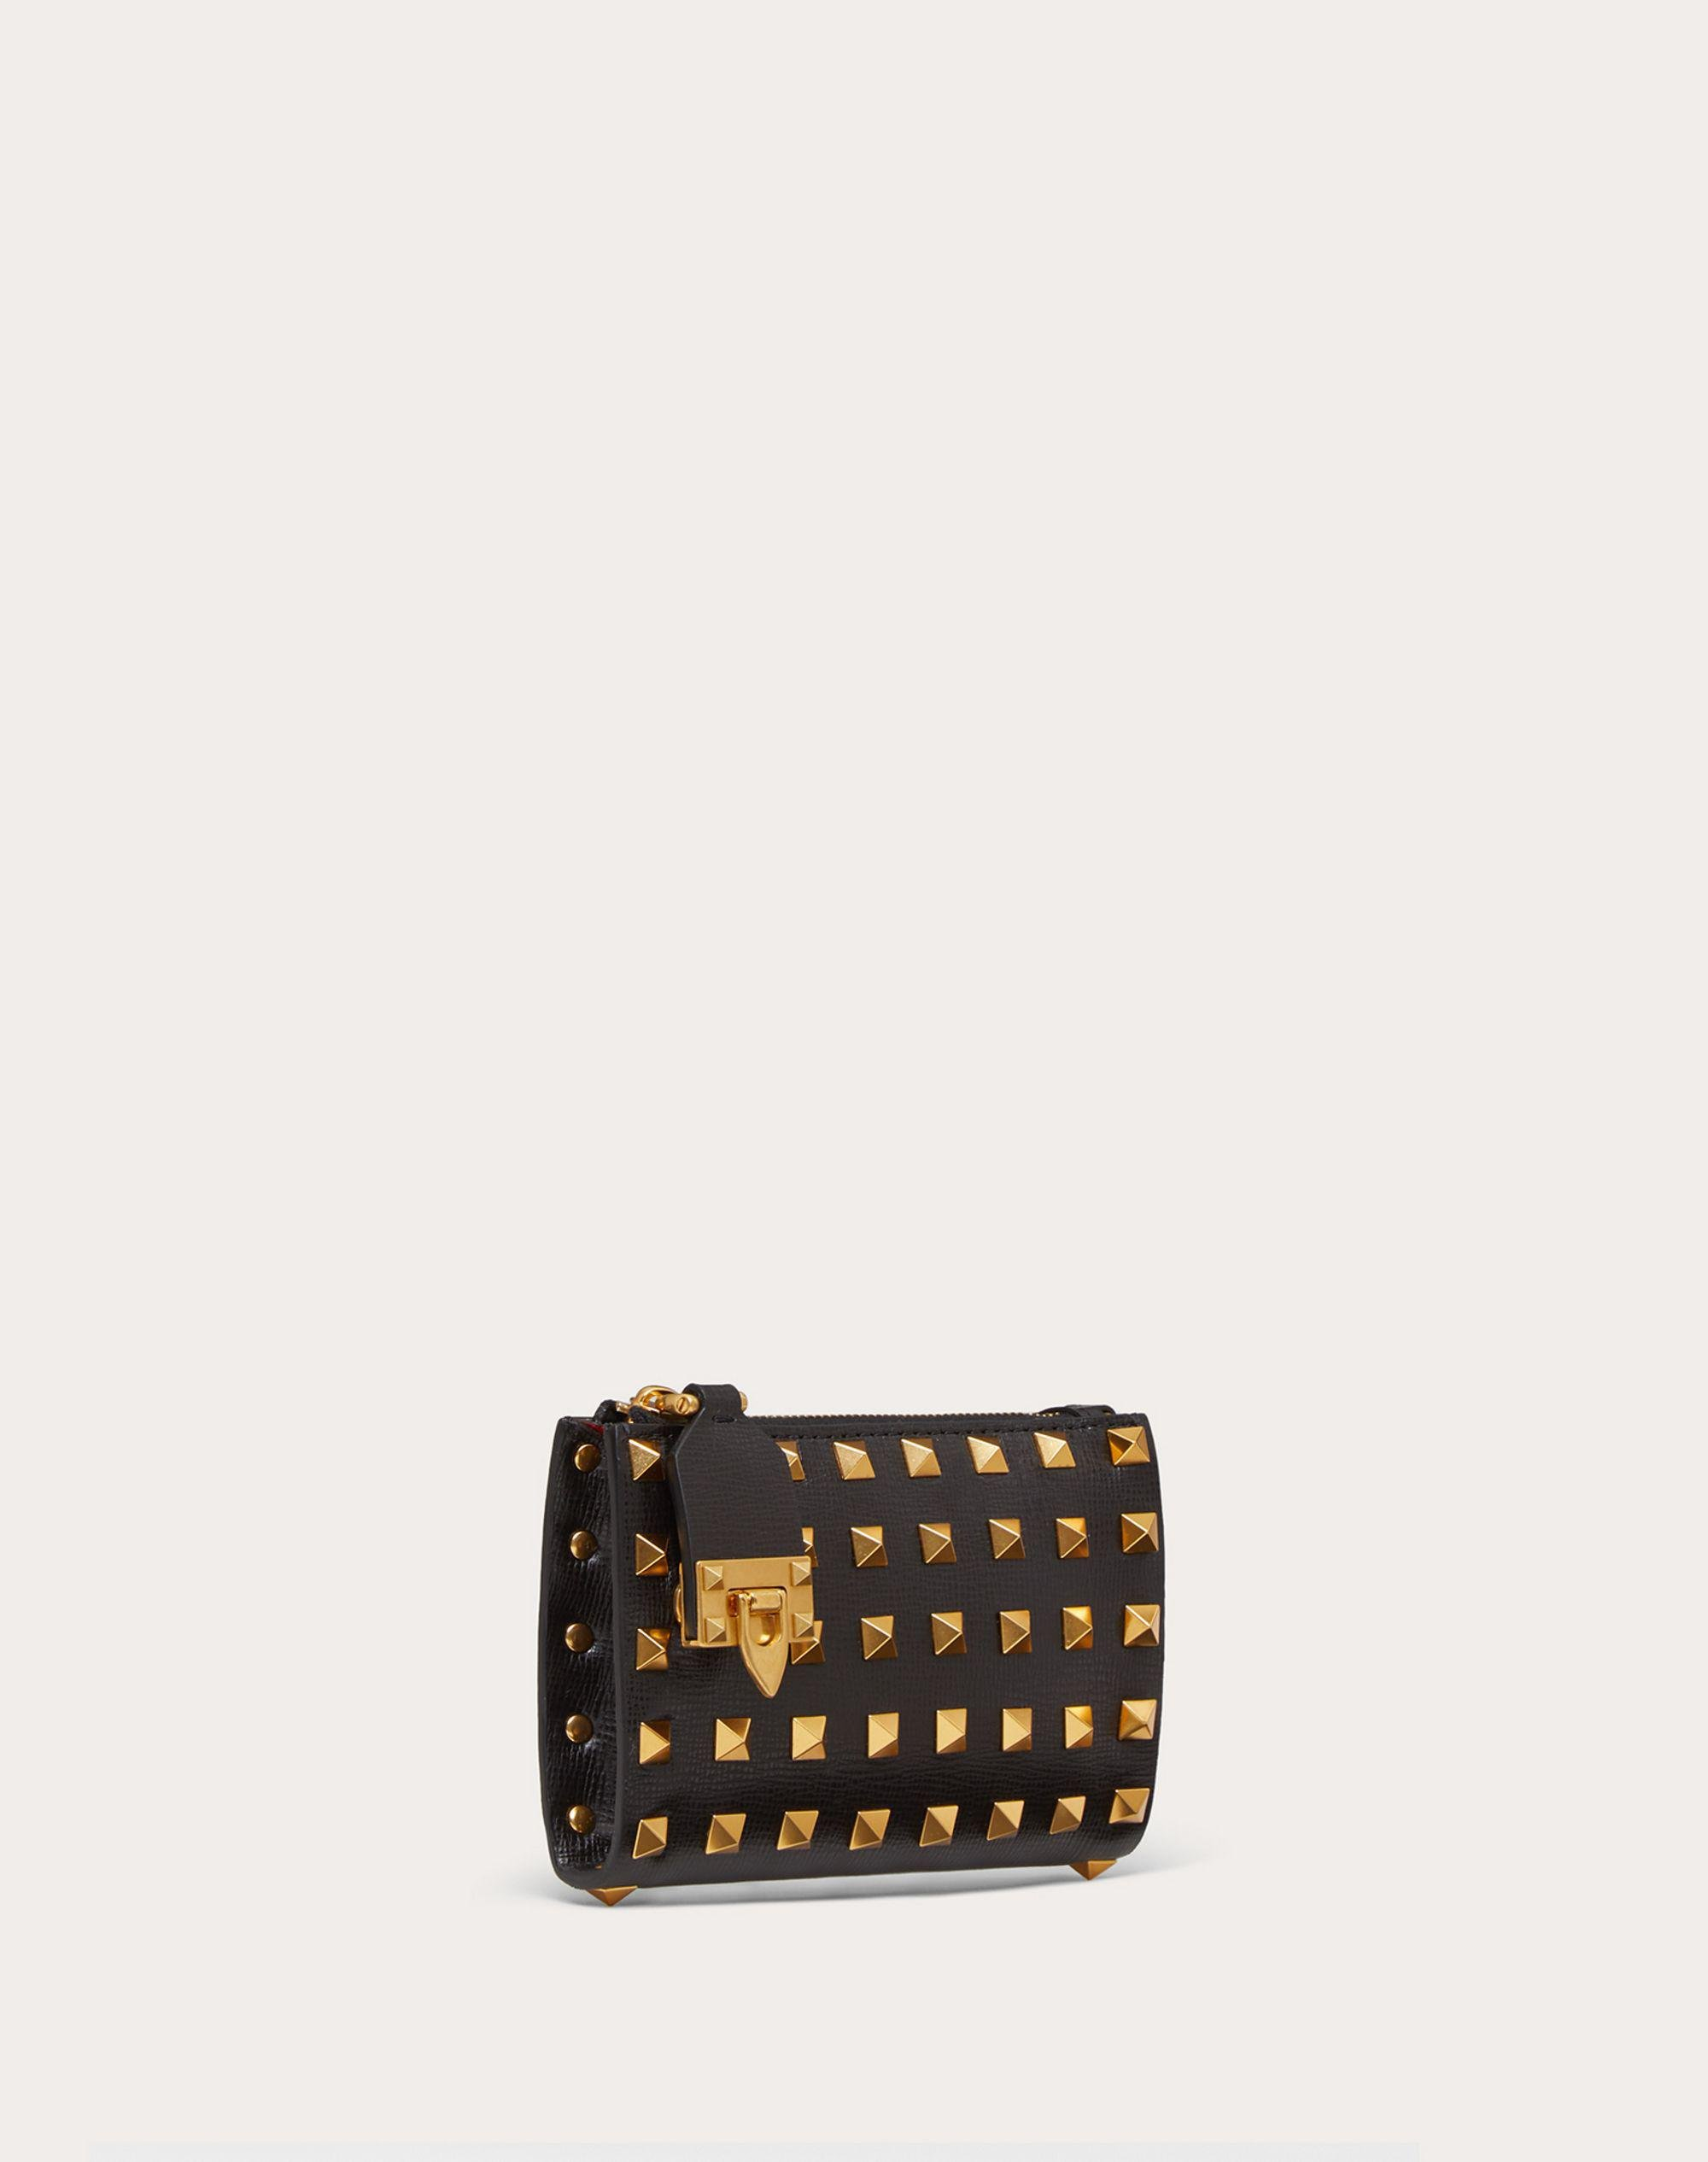 VALENTINO GARAVANI ROCKSTUD COIN PURSE AND CARDHOLDER IN GRAINY CALFSKIN LEATHER WITH ALL-OVER STUDS 3